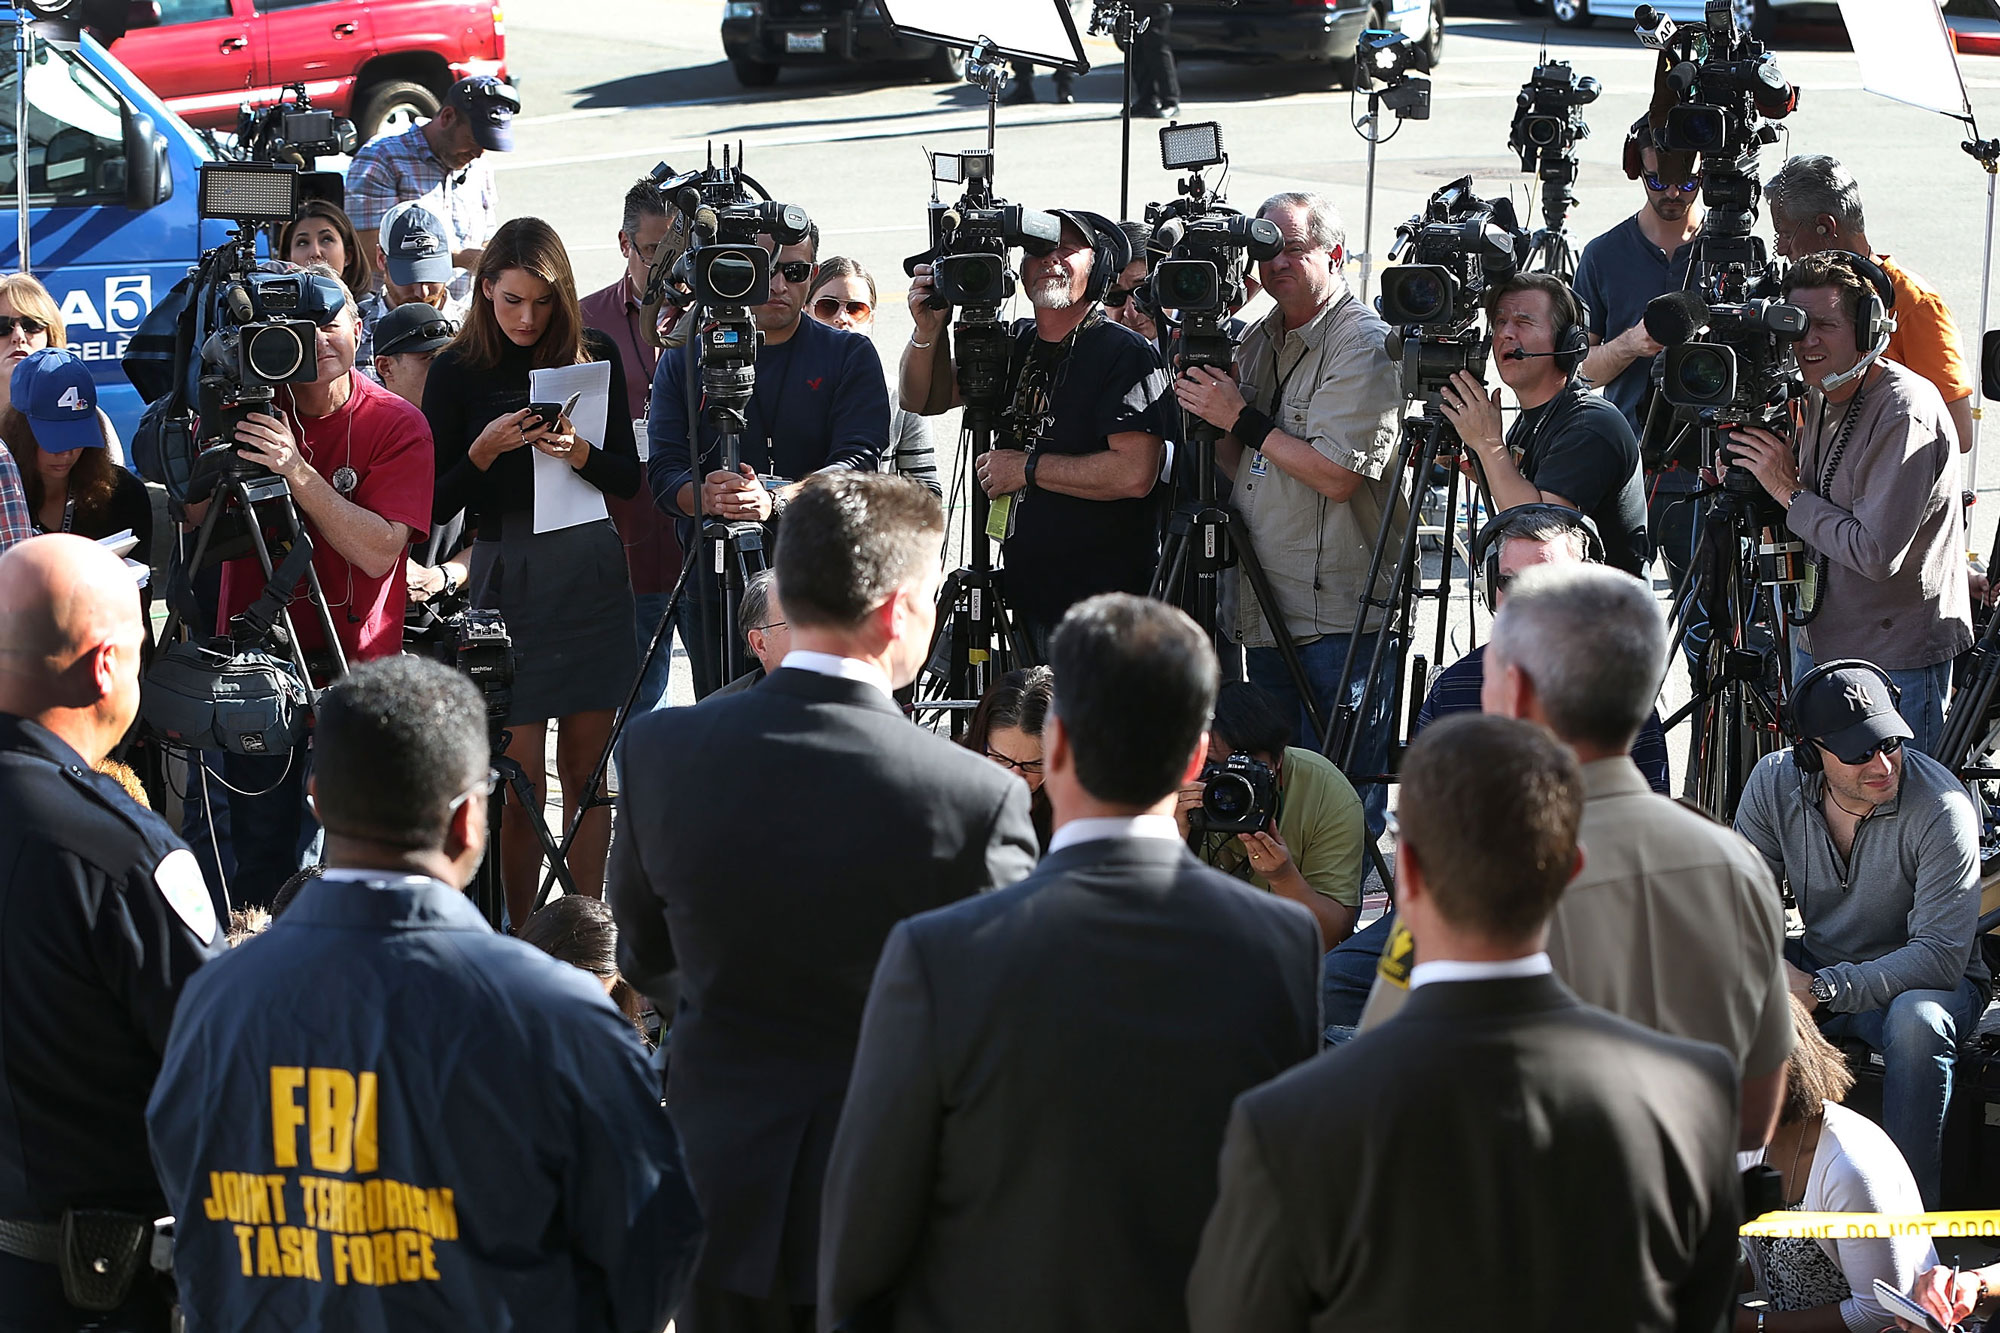 SAN BERNARDINO, CA - DECEMBER 07:  David Bowdich, FBI Assistant Director in Charge of the Los Angeles Field Office, (C) stands with other law enforcement officials as he speaks to the media about the terrorist attack at the Inland Regional Center on December 7, 2015 in San Bernardino, California. Law enforcement officials continue to investigate the mass shooting at the Inland Regional Center in San Bernardino that left 14 people dead and another 17 injured on December 2nd.  (Photo by Joe Raedle/Getty Images)